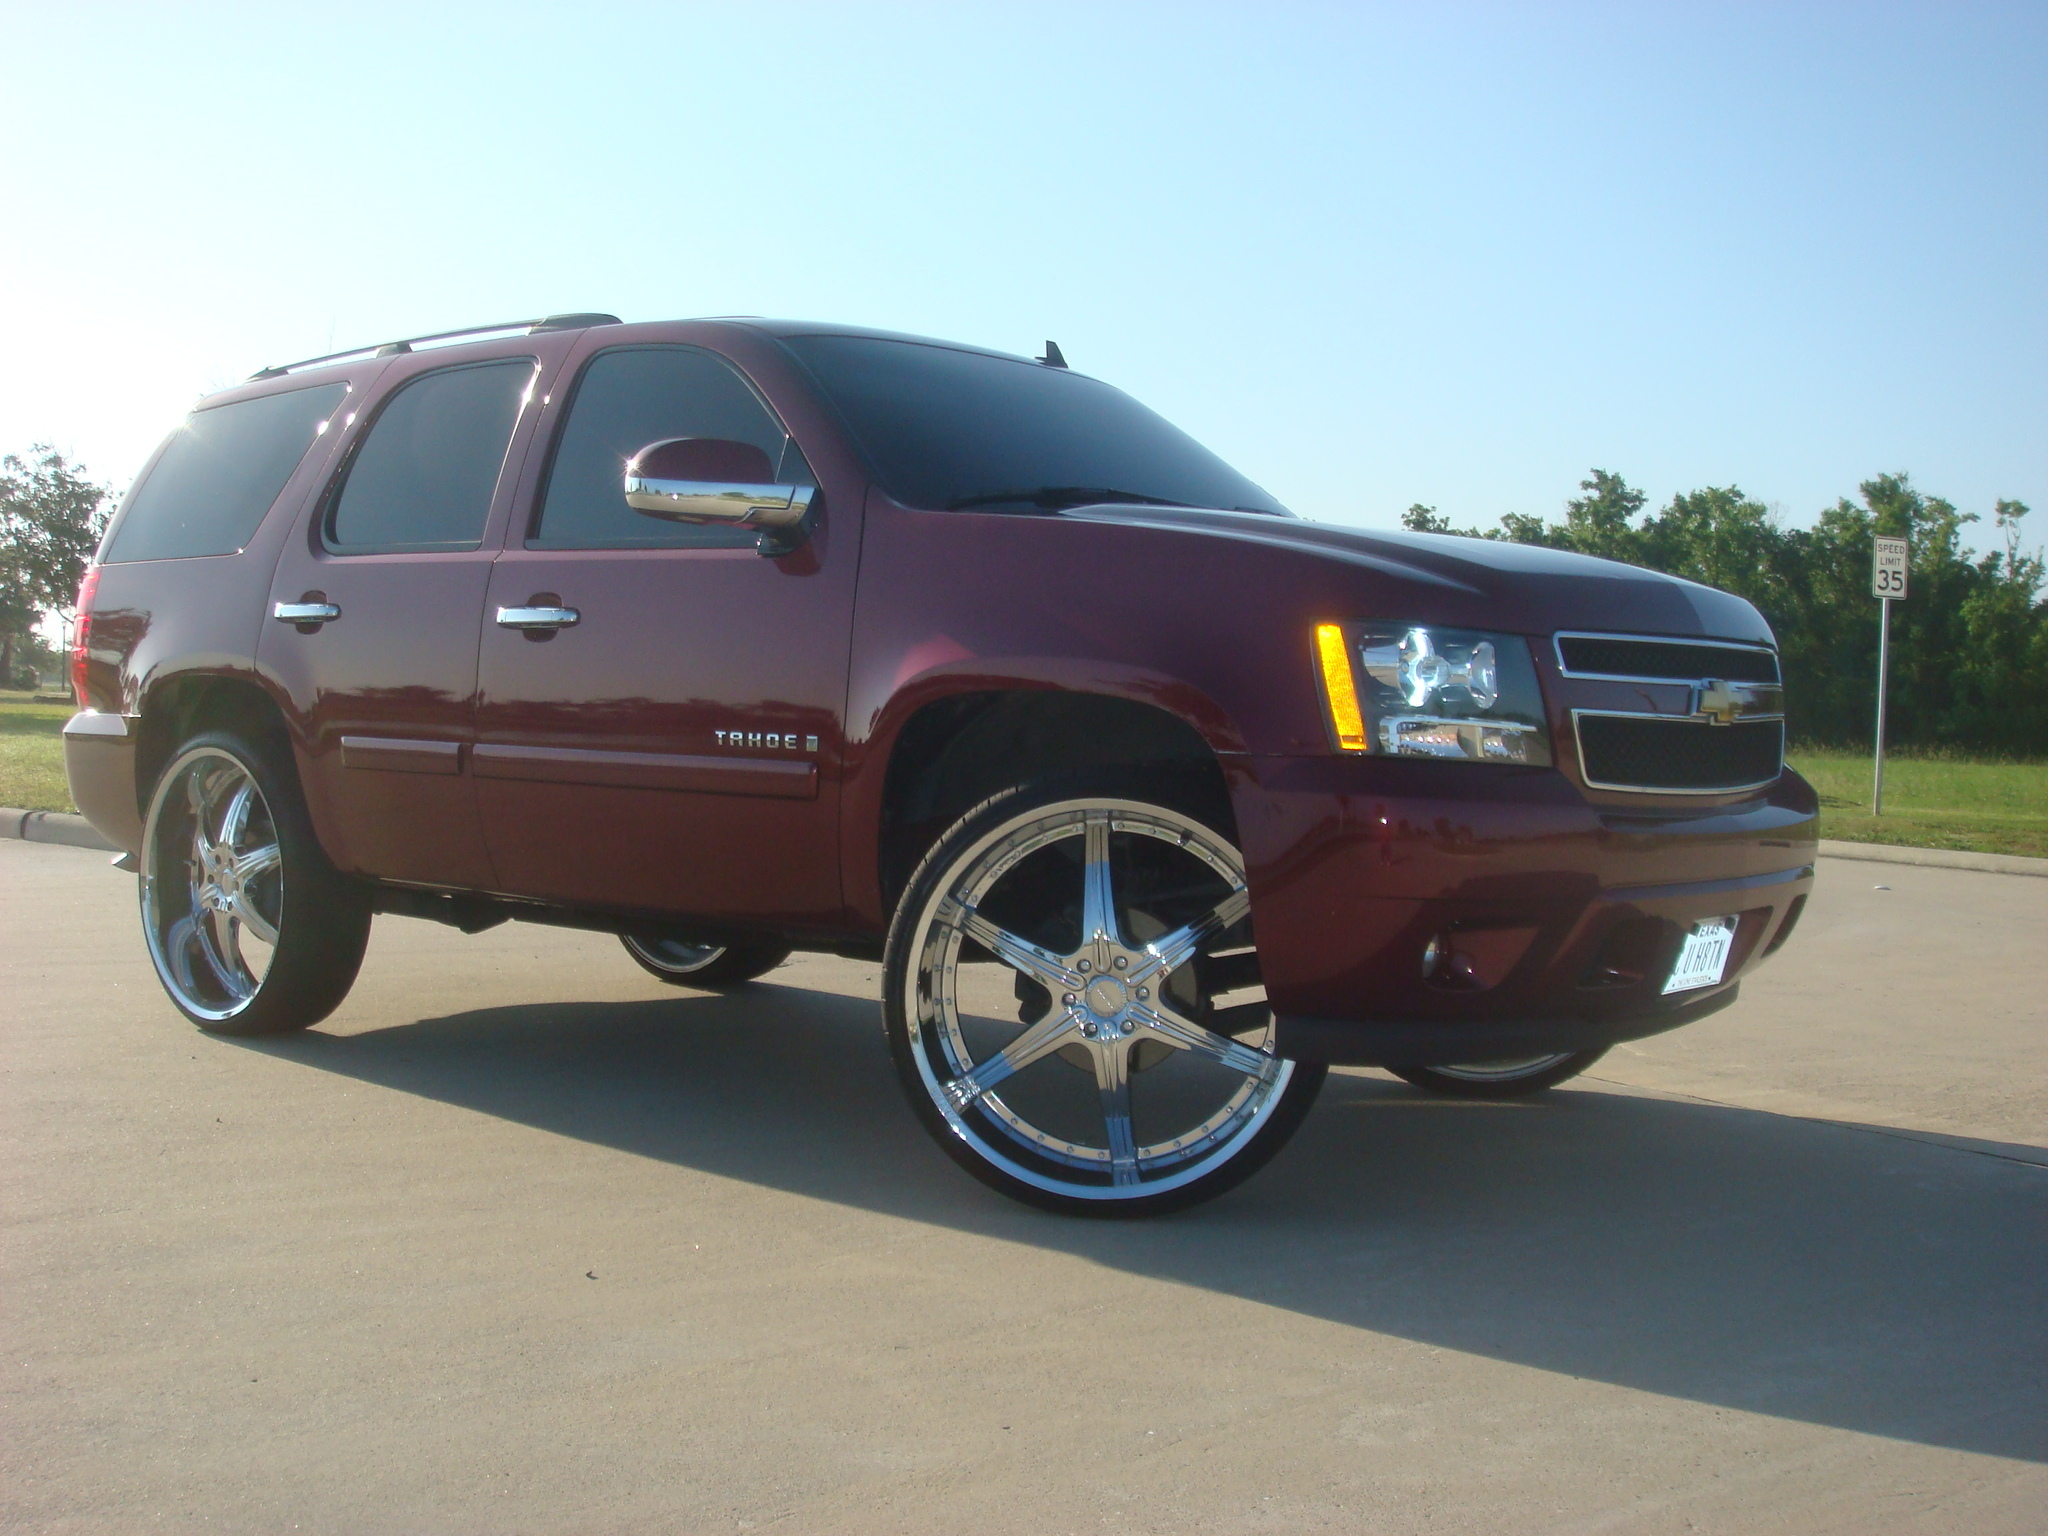 Str8304 2 2008 Chevrolet Tahoe Specs Photos Modification Info At Cardomain